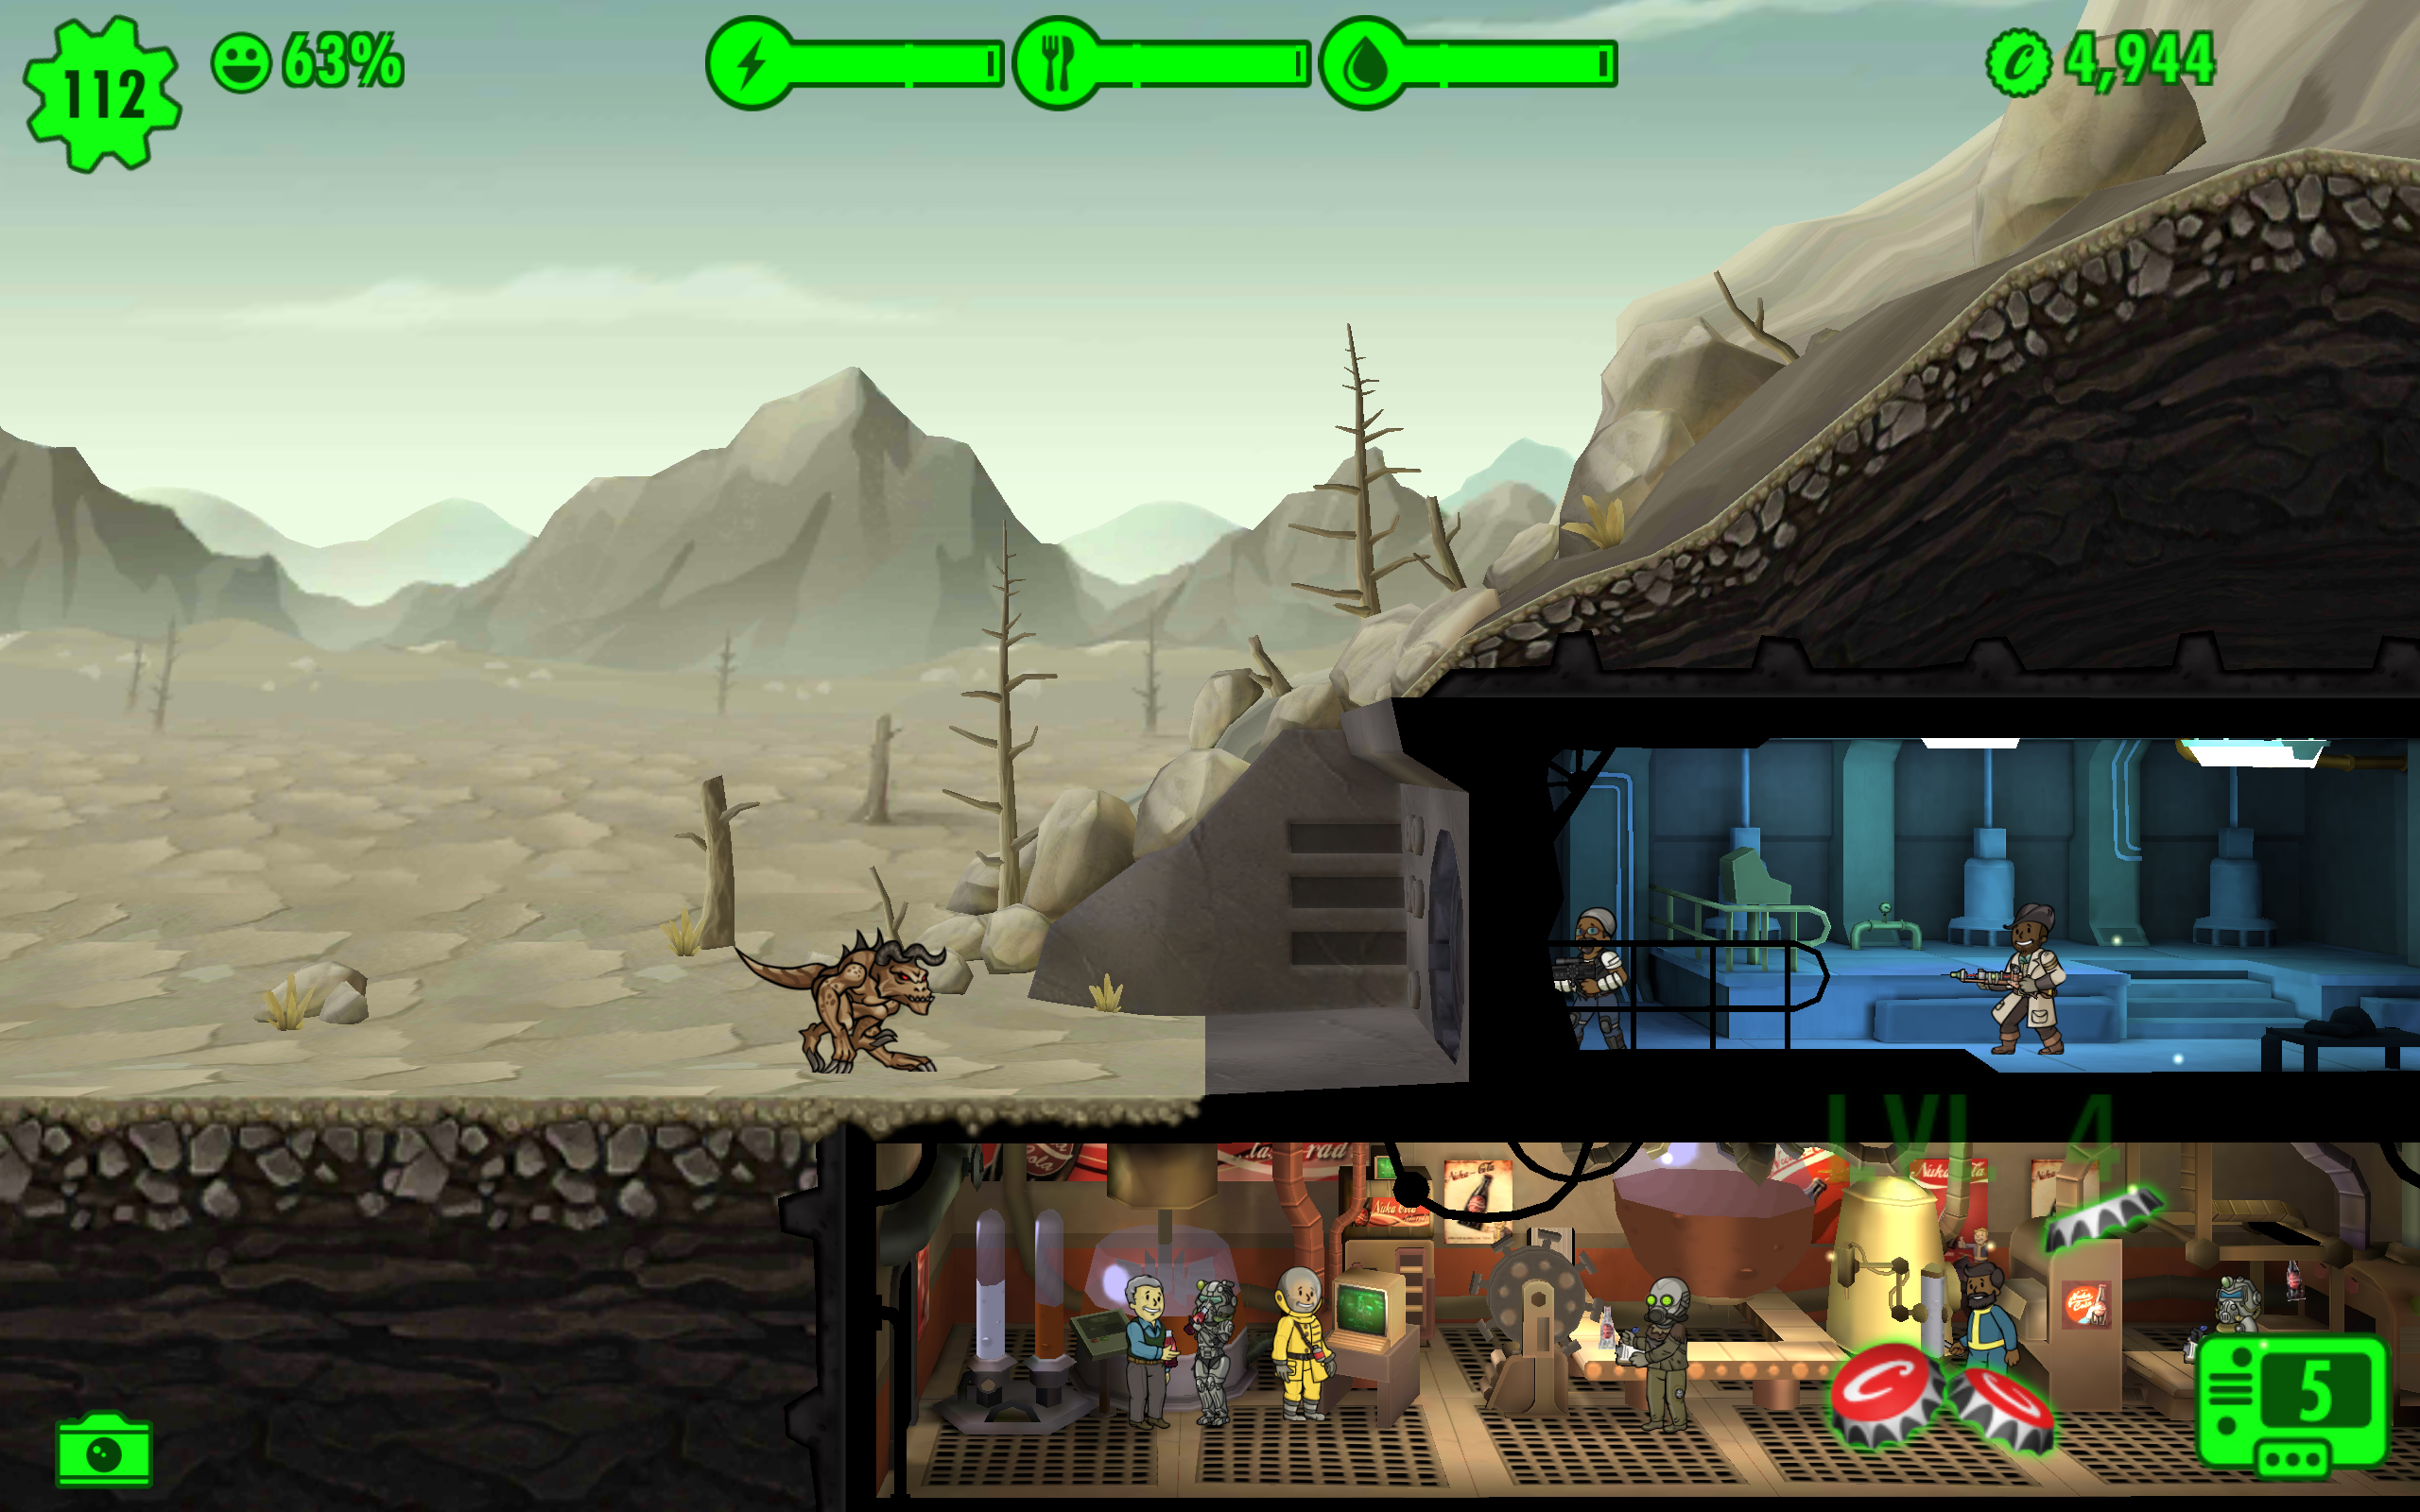 Battle Mole Rats and Deathclaws in the updated Fallout Shelter